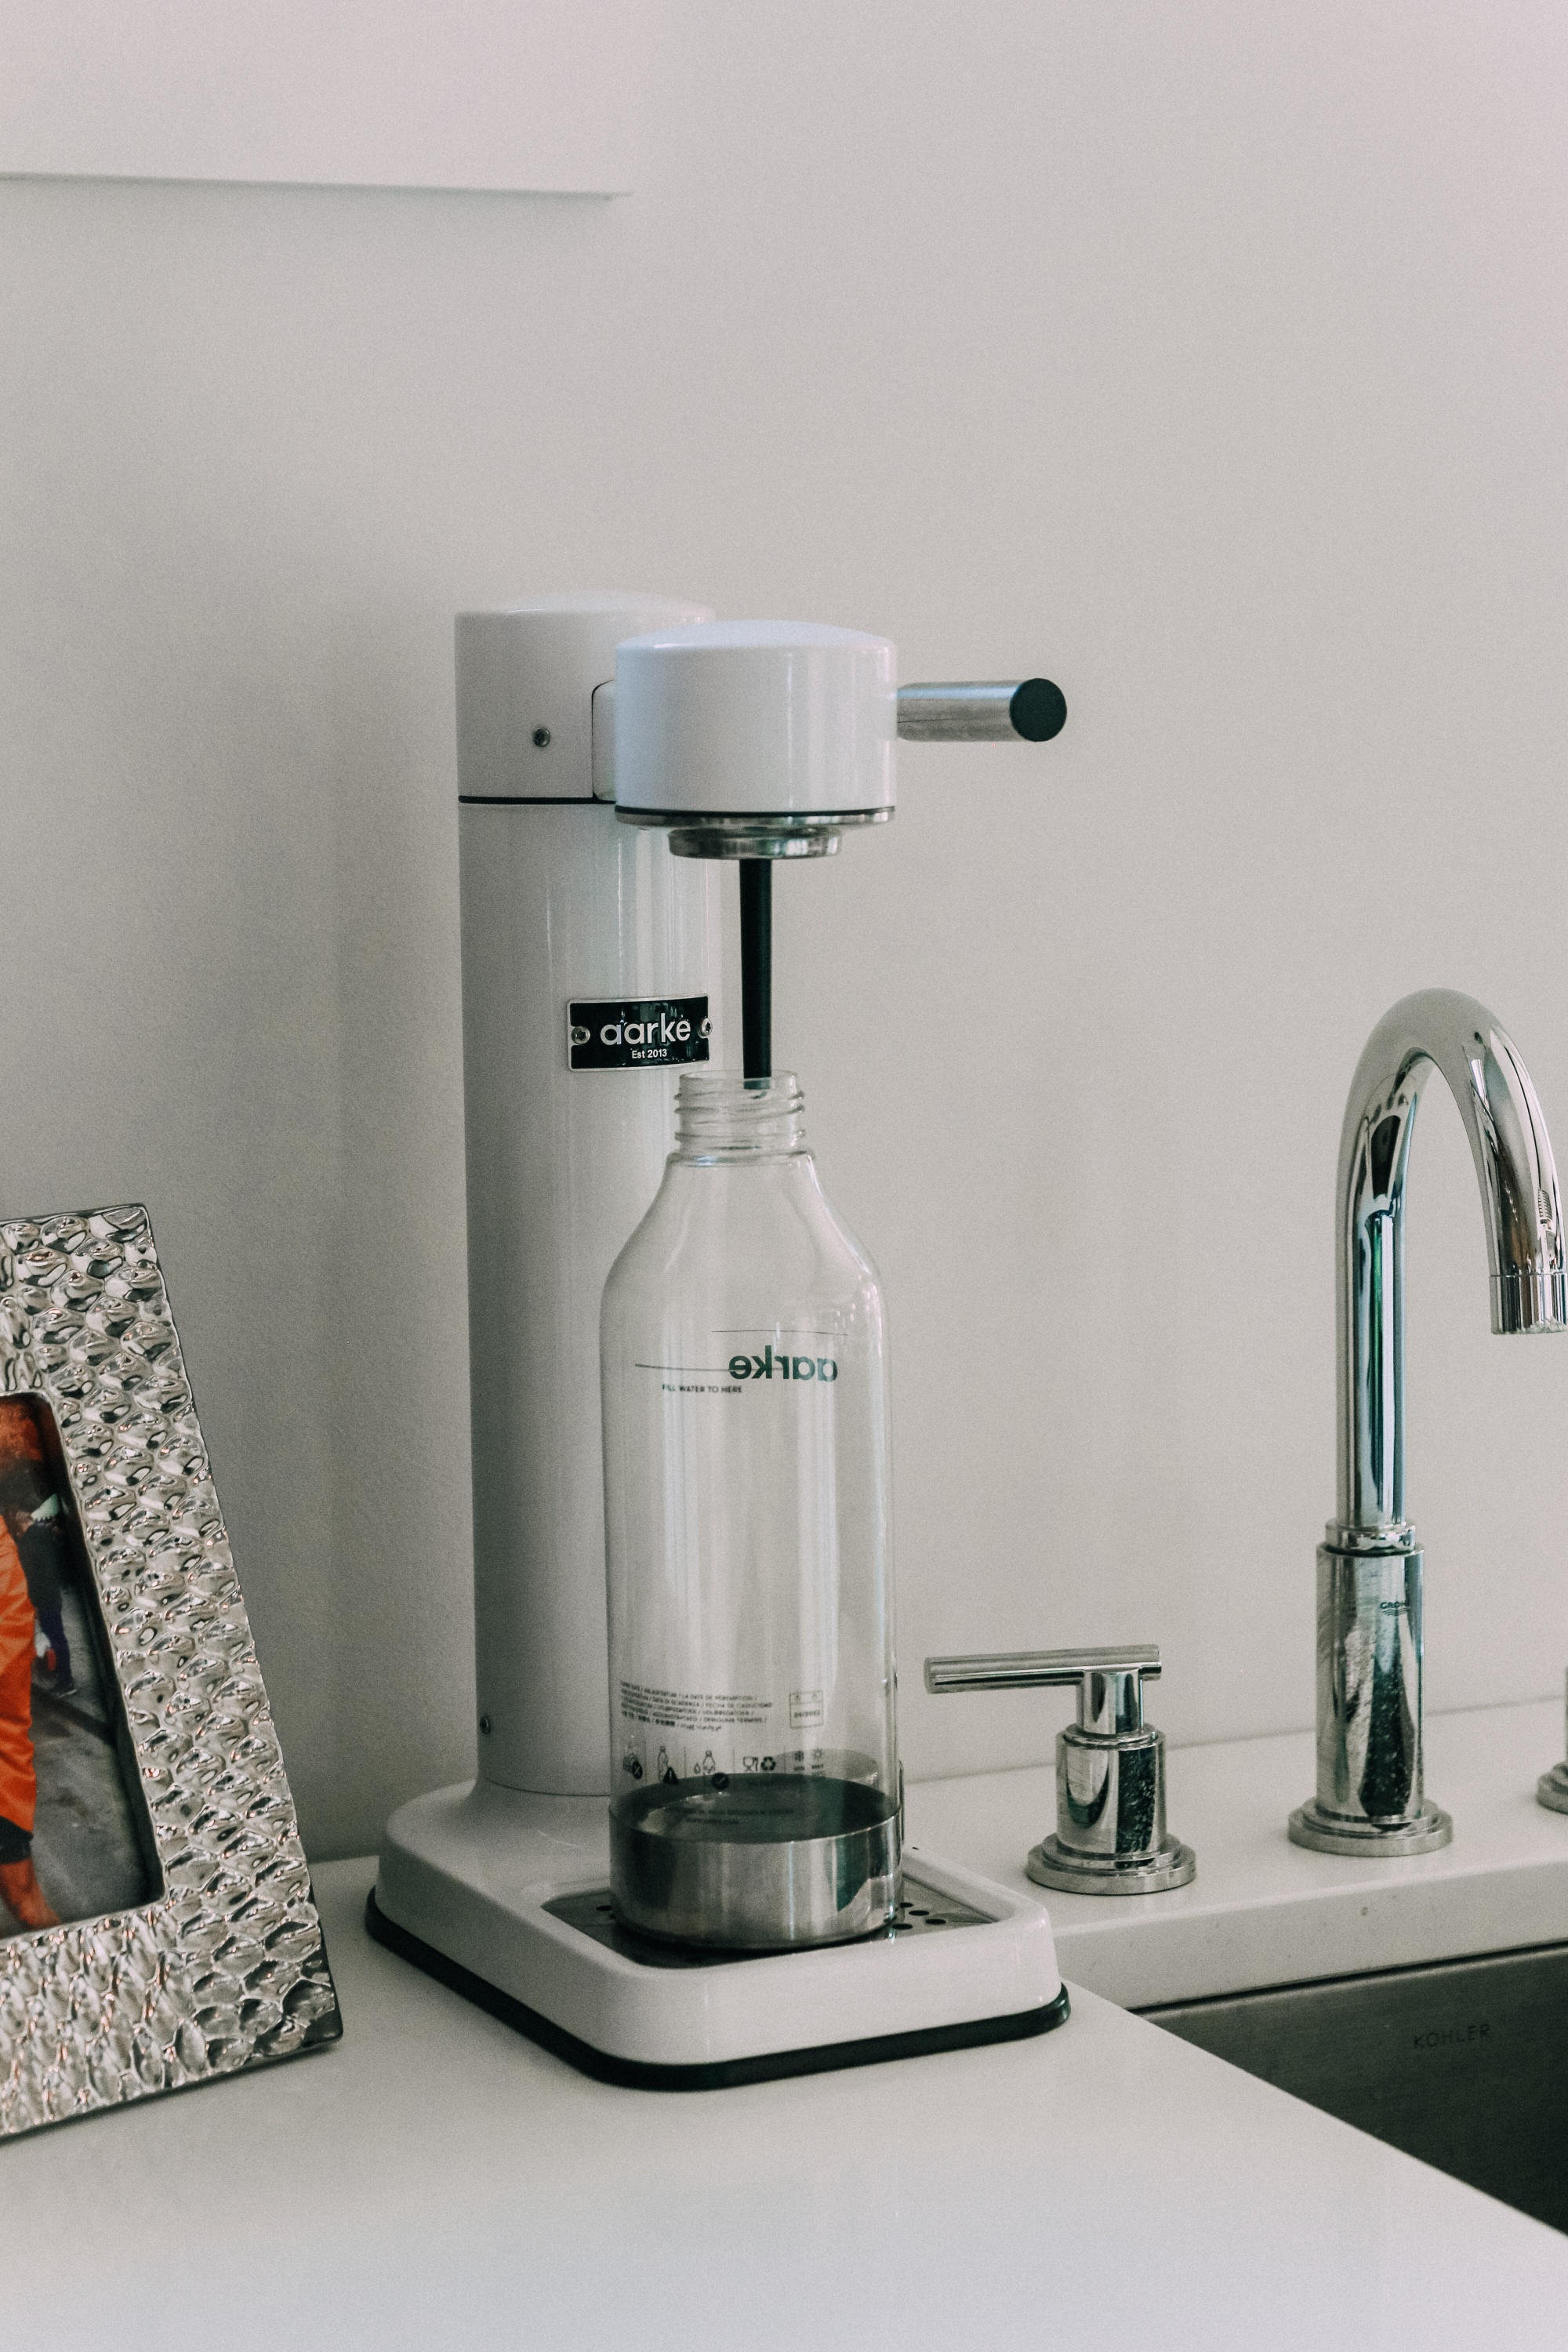 carbonator on wet bar or coffee station